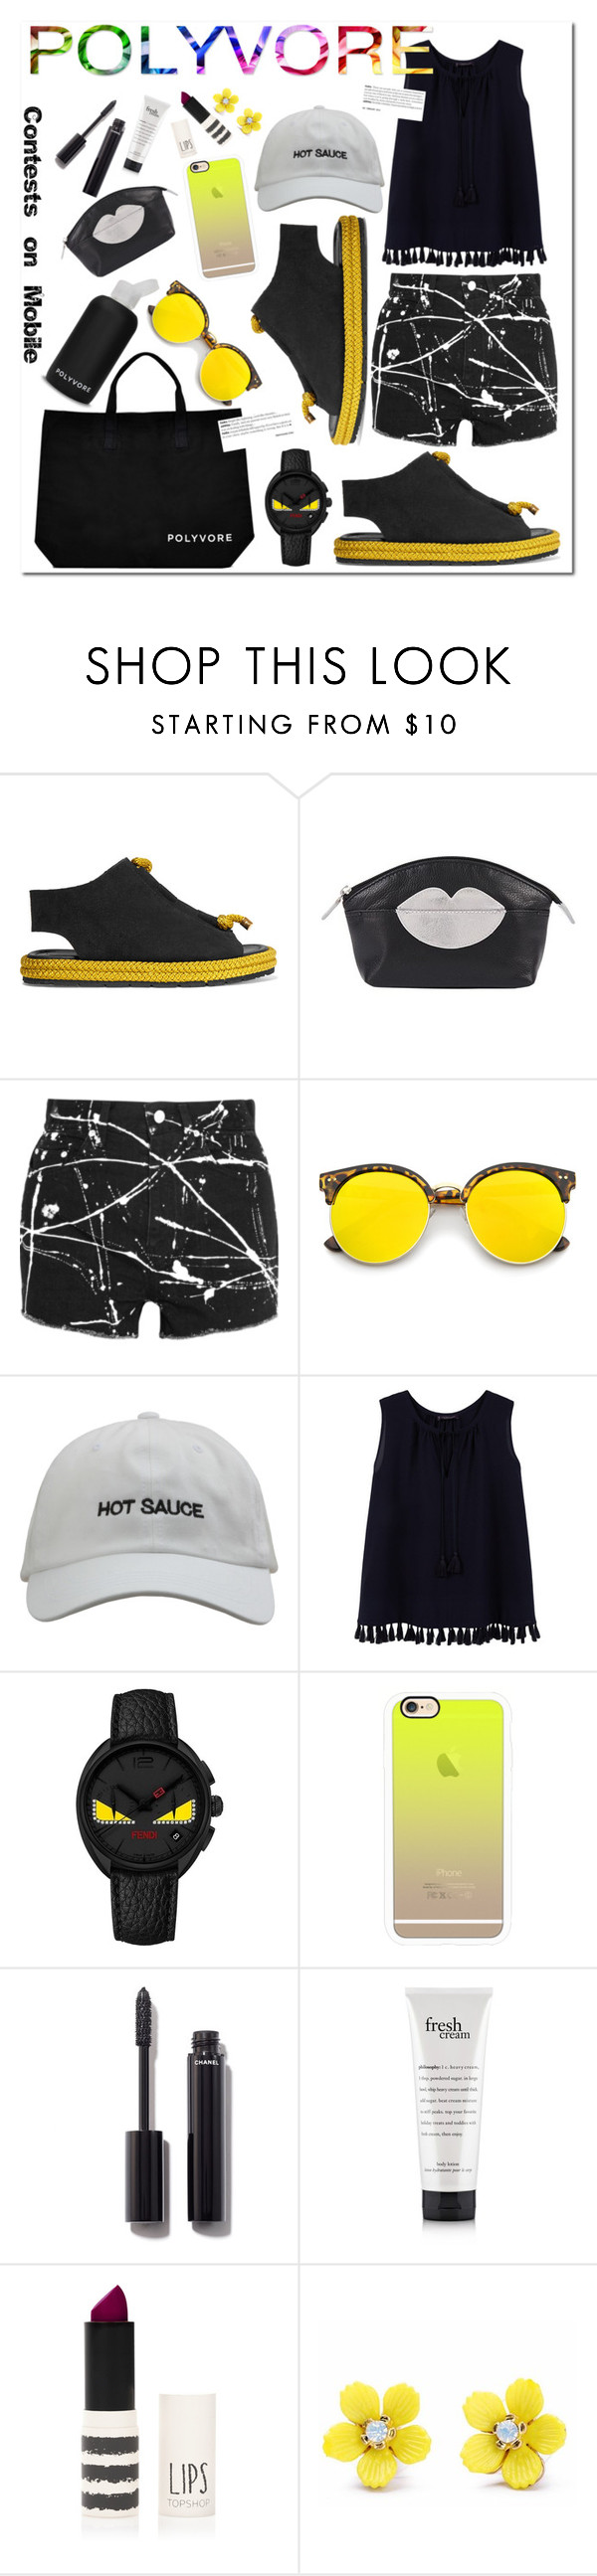 """#ContestOnTheGo #ContestEntry"" by stacey-lynne ❤ liked on Polyvore featuring bkr, Acne Studios, ILI, Yves Saint Laurent, Revo, Violeta by Mango, Fendi, Casetify, Chanel and Topshop"